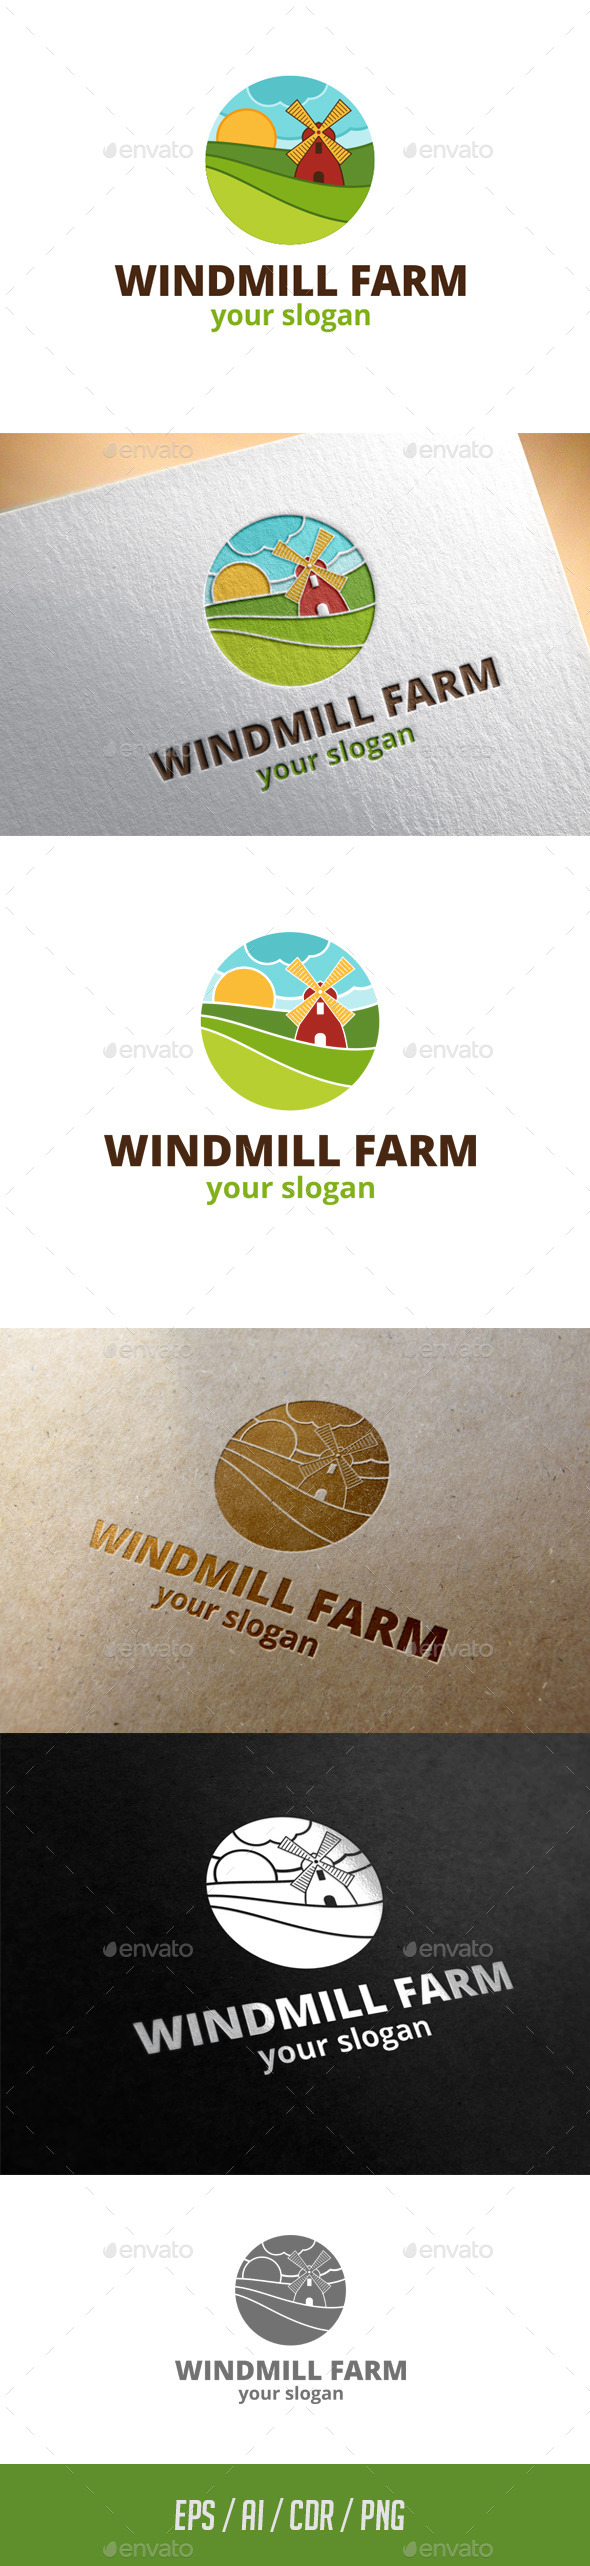 GraphicRiver Windmill Farm Logo Template 11444449